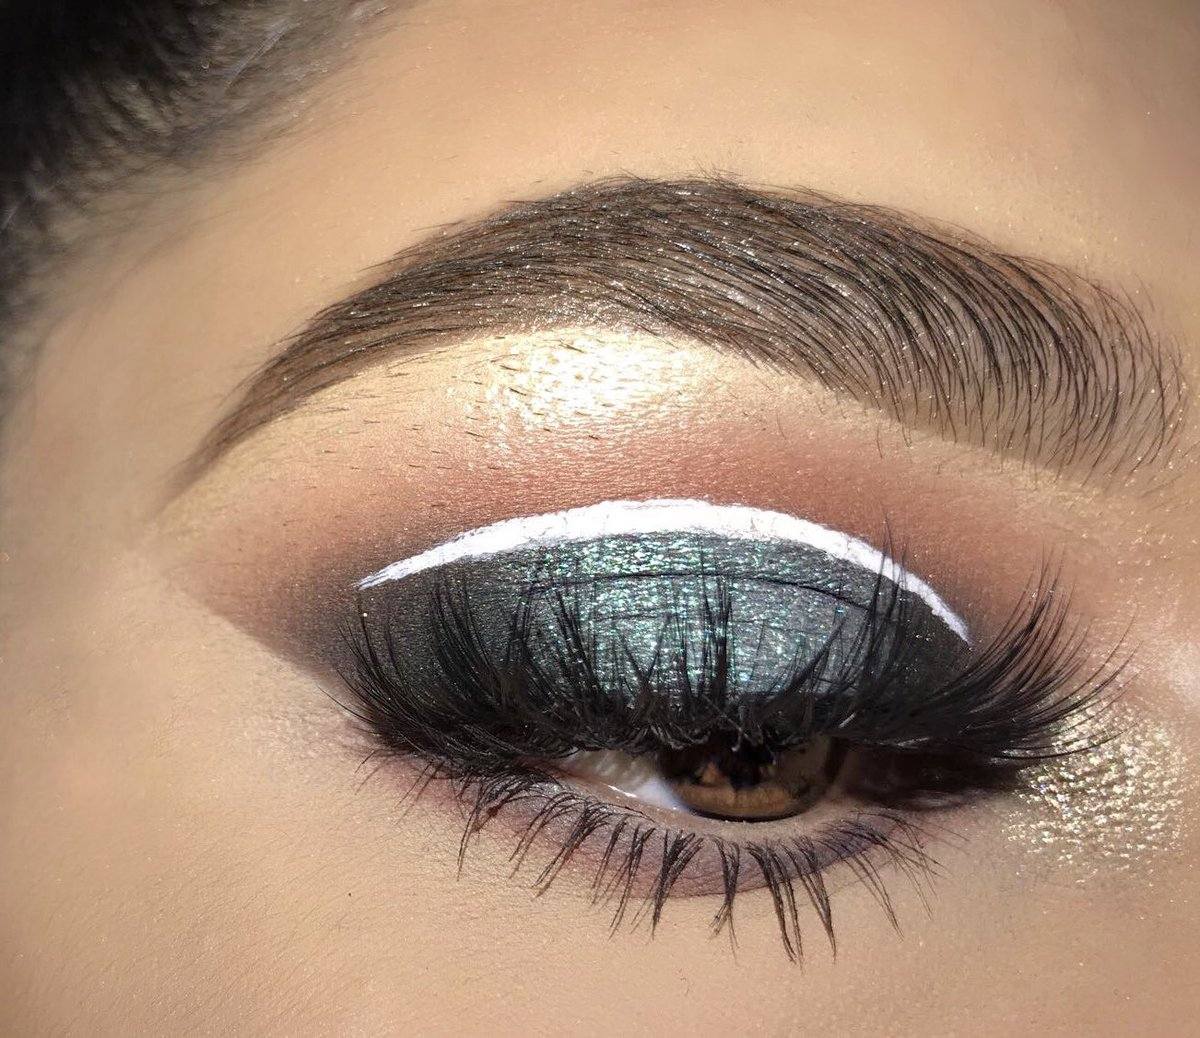 232c72d347c ... Dip Brow in Medium Brown - Lashes: @lashdreams Sweetheart White liner:  @NyxCosmetics #doseofcolors  #iluvsarahiixdoseofcolorspic.twitter.com/1I8QfcPWR6